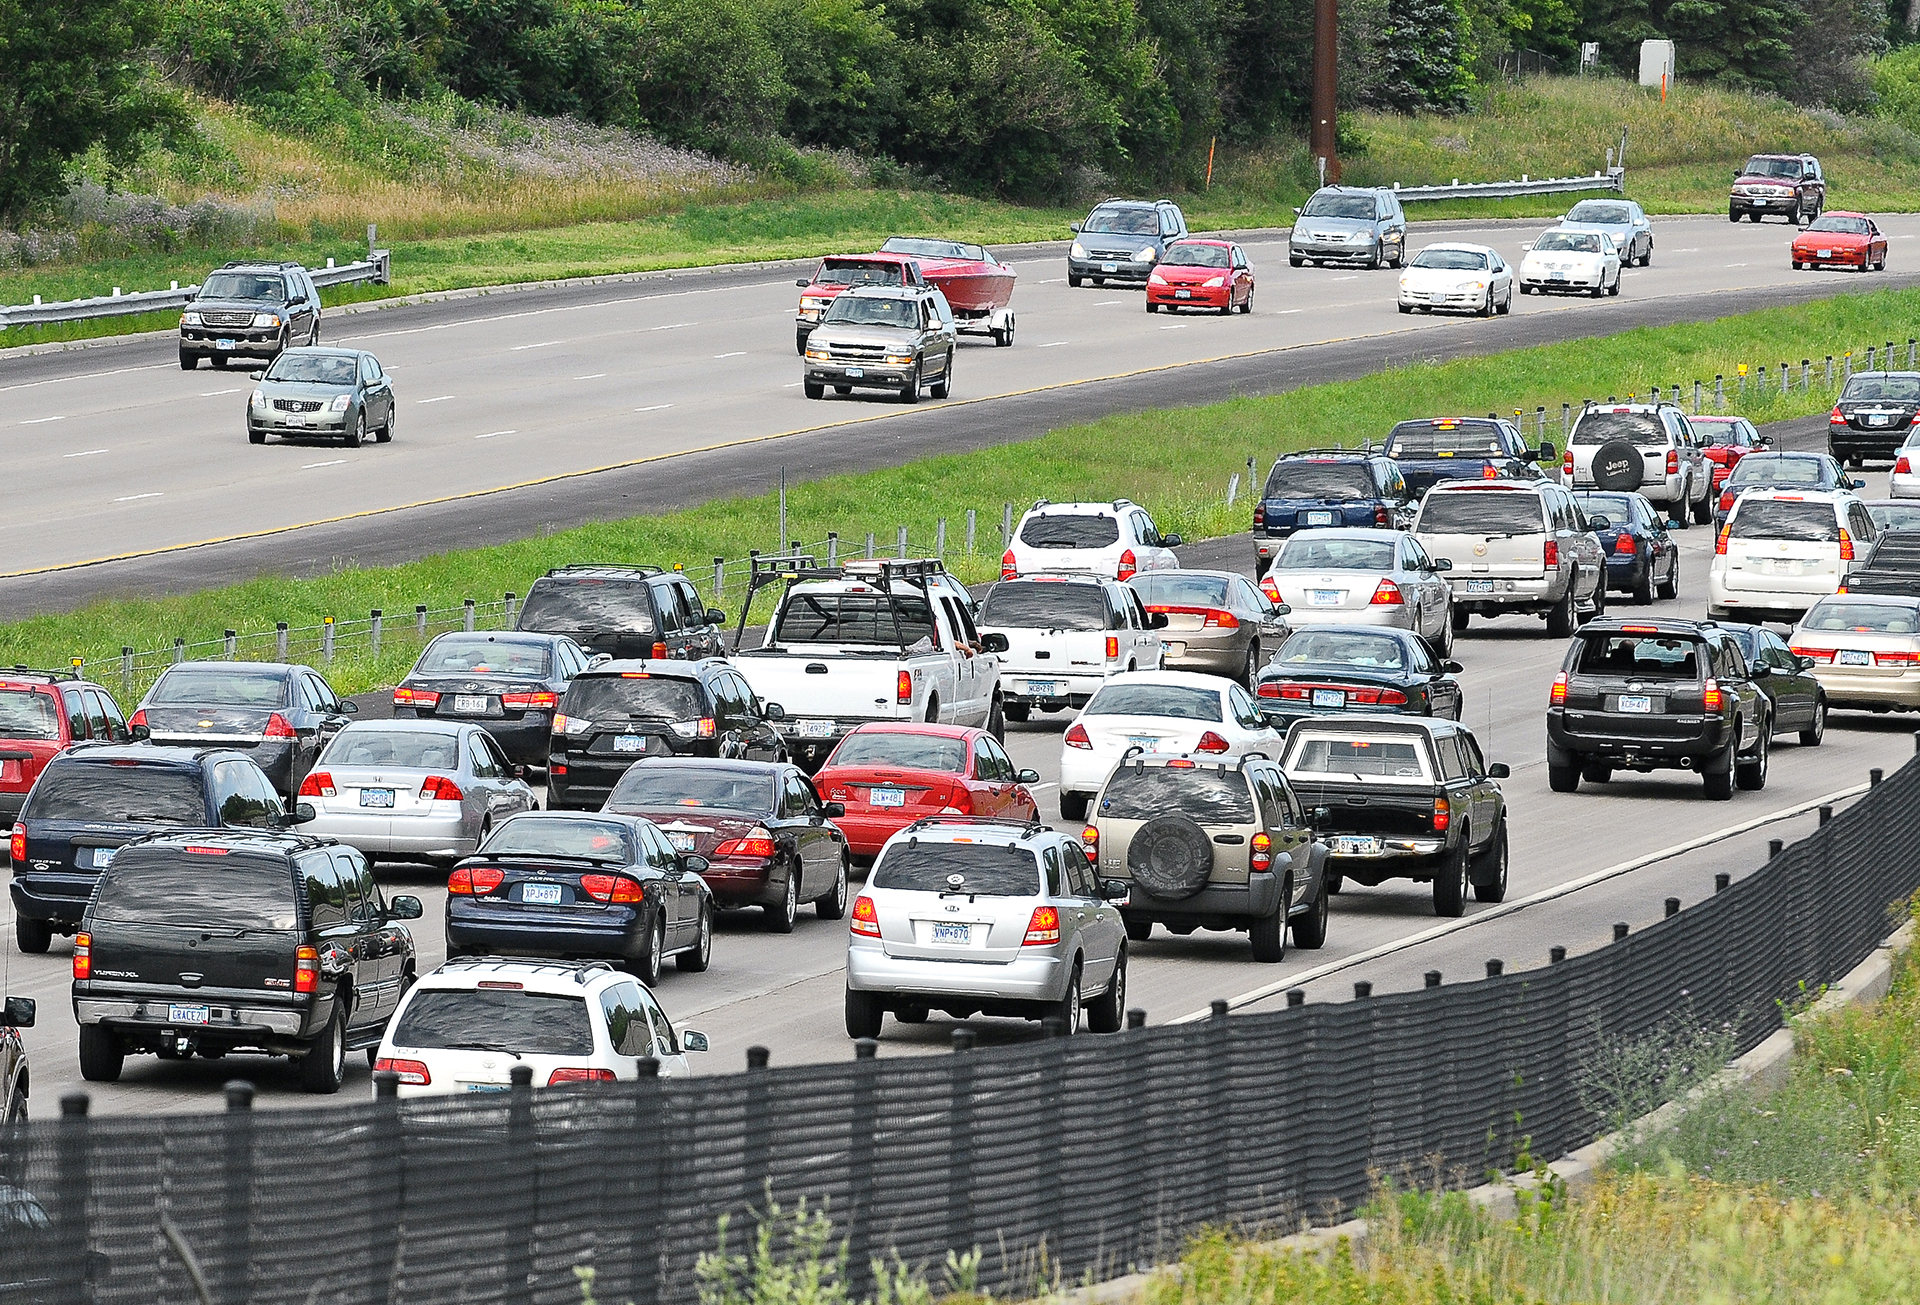 A recent report from the Minnesota Department of Transportation indicates solutions are needed for metro area congestion (Photo Credit: Minnesota Department of Transportation).